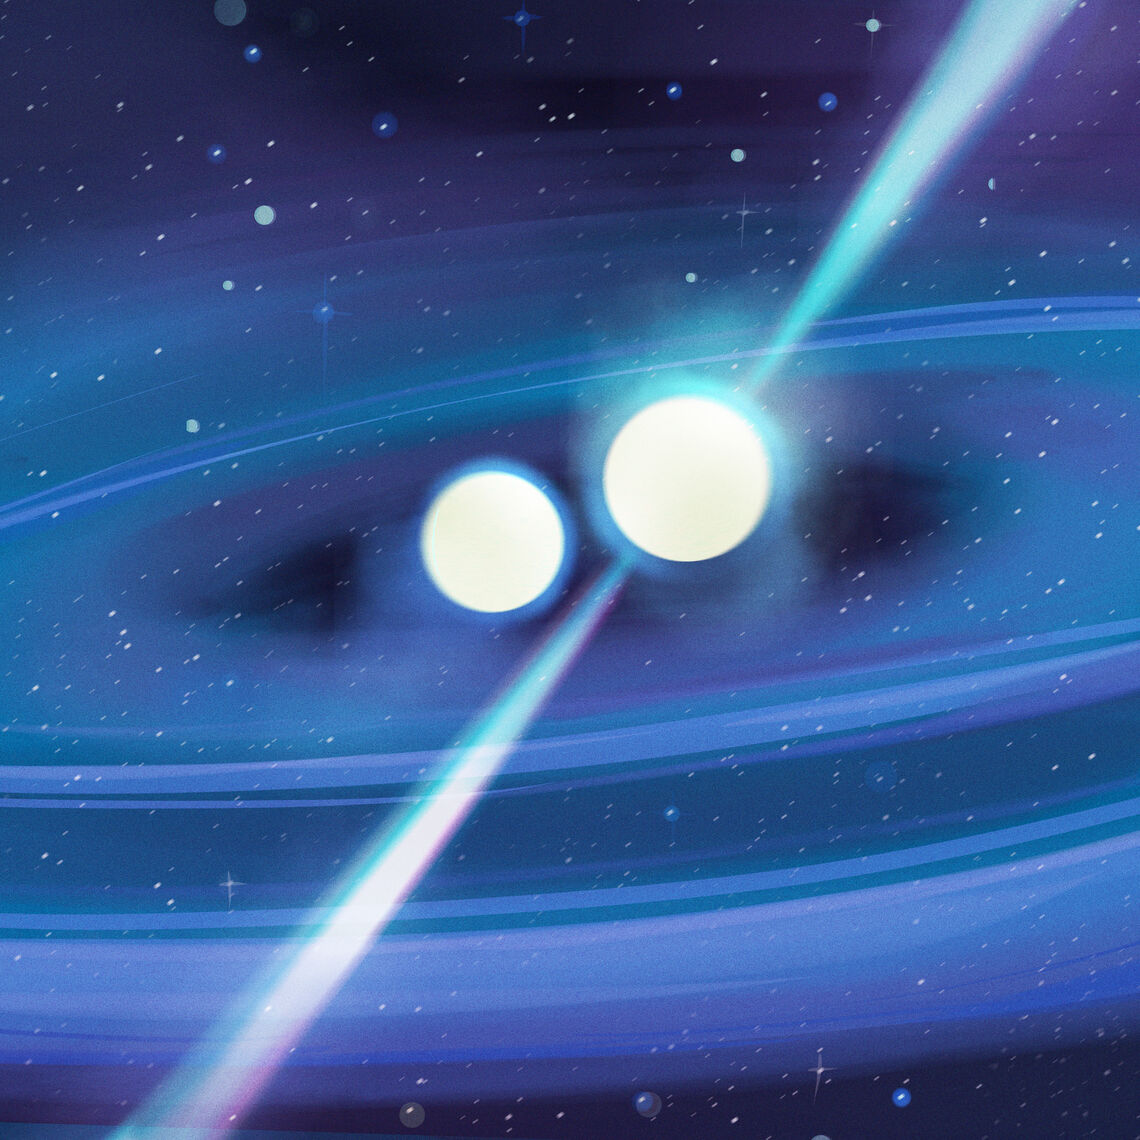 A Franklin & Marshall physics professor is part of an international research team whose discovery of an unusual pulsar is an important breakthrough in how scientists understand dead-star collisions and the expansion of the universe.